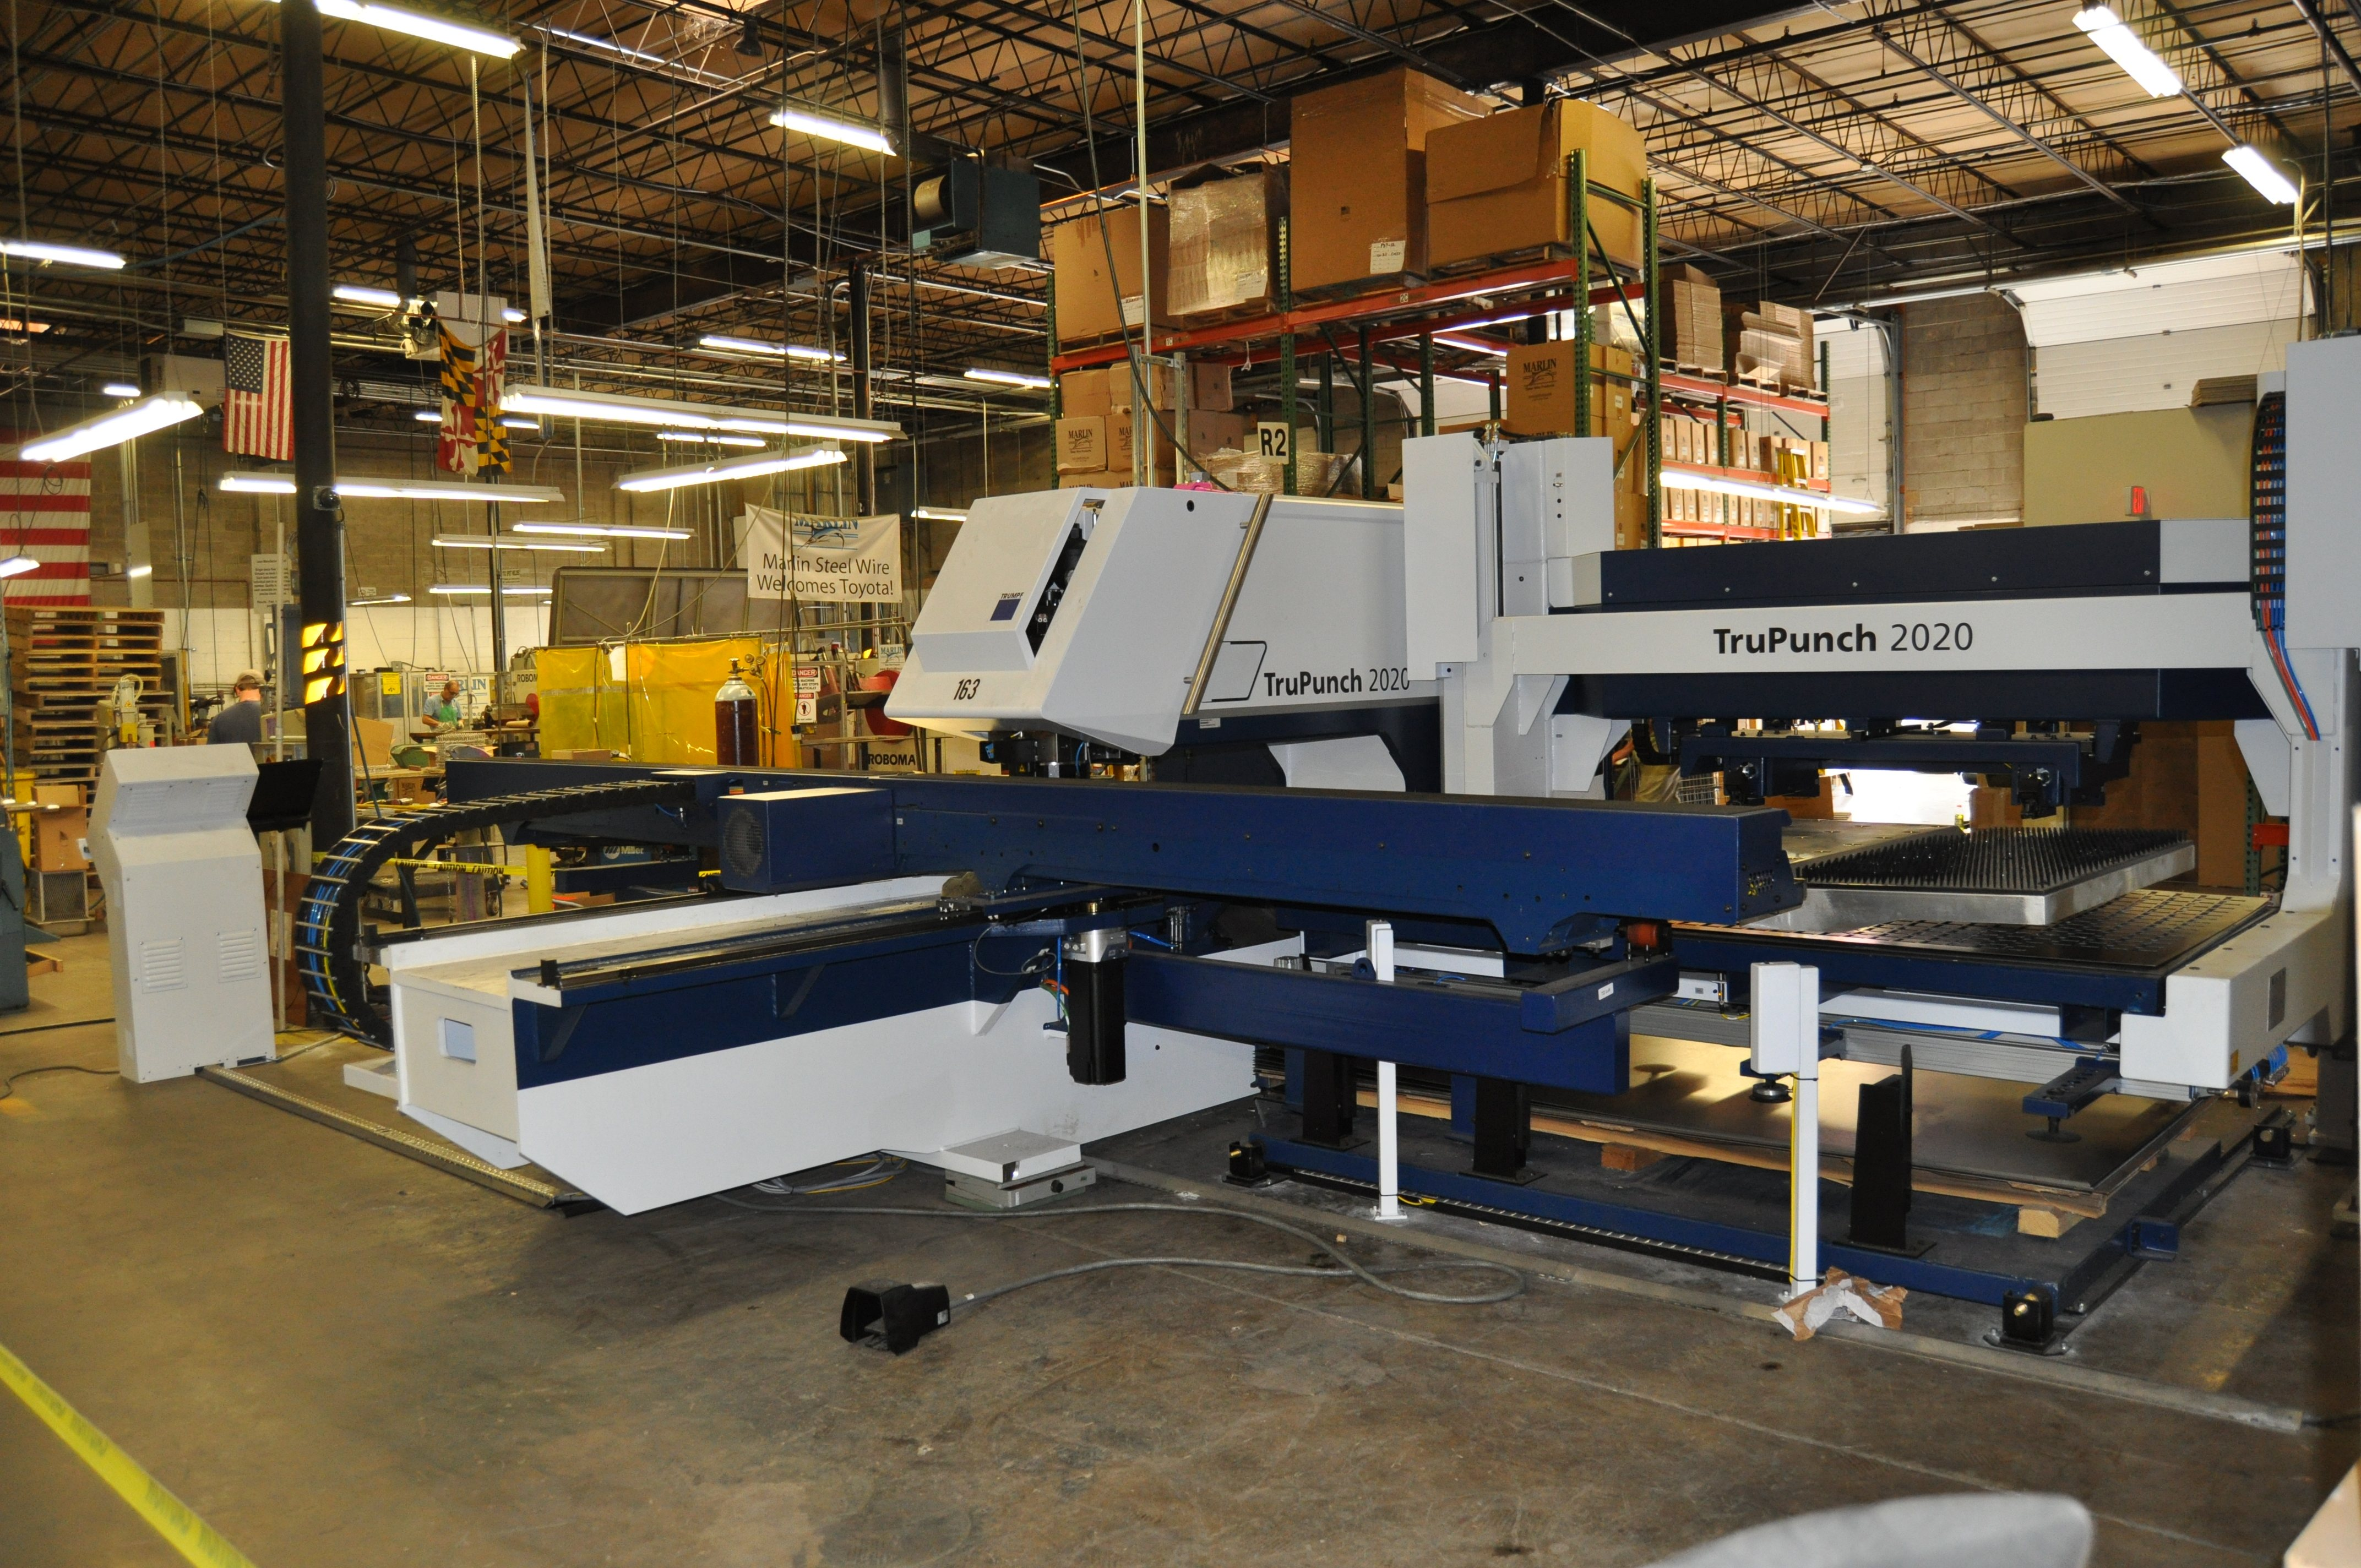 Marlin Steel Wire Expands Manufacturing Space By 75